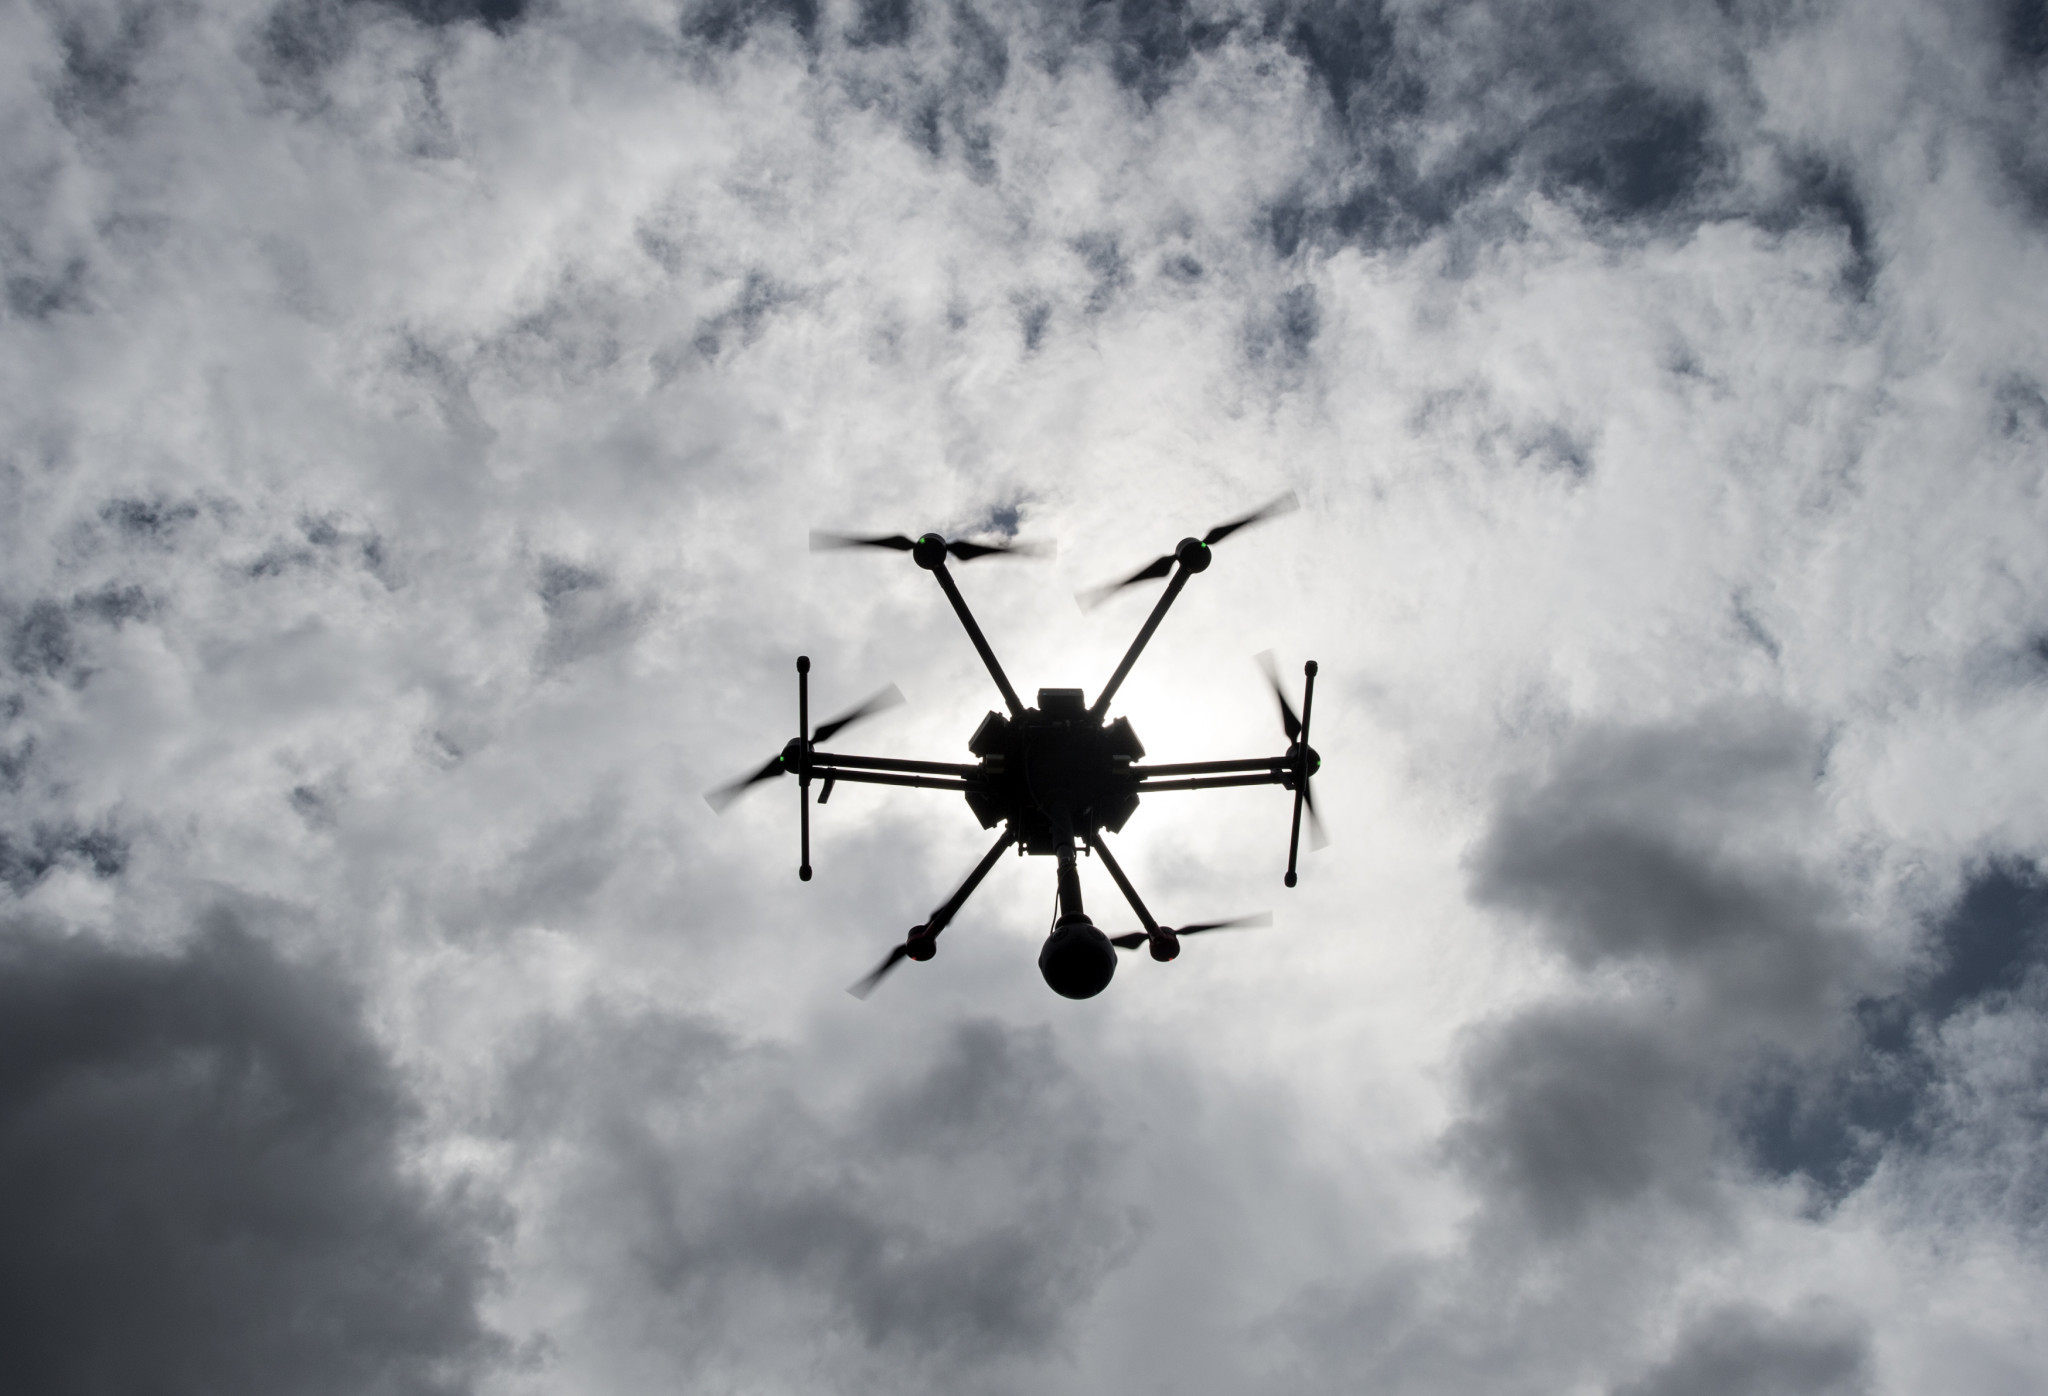 Video drones to feature among security measures at 2018 World Cup in Russia